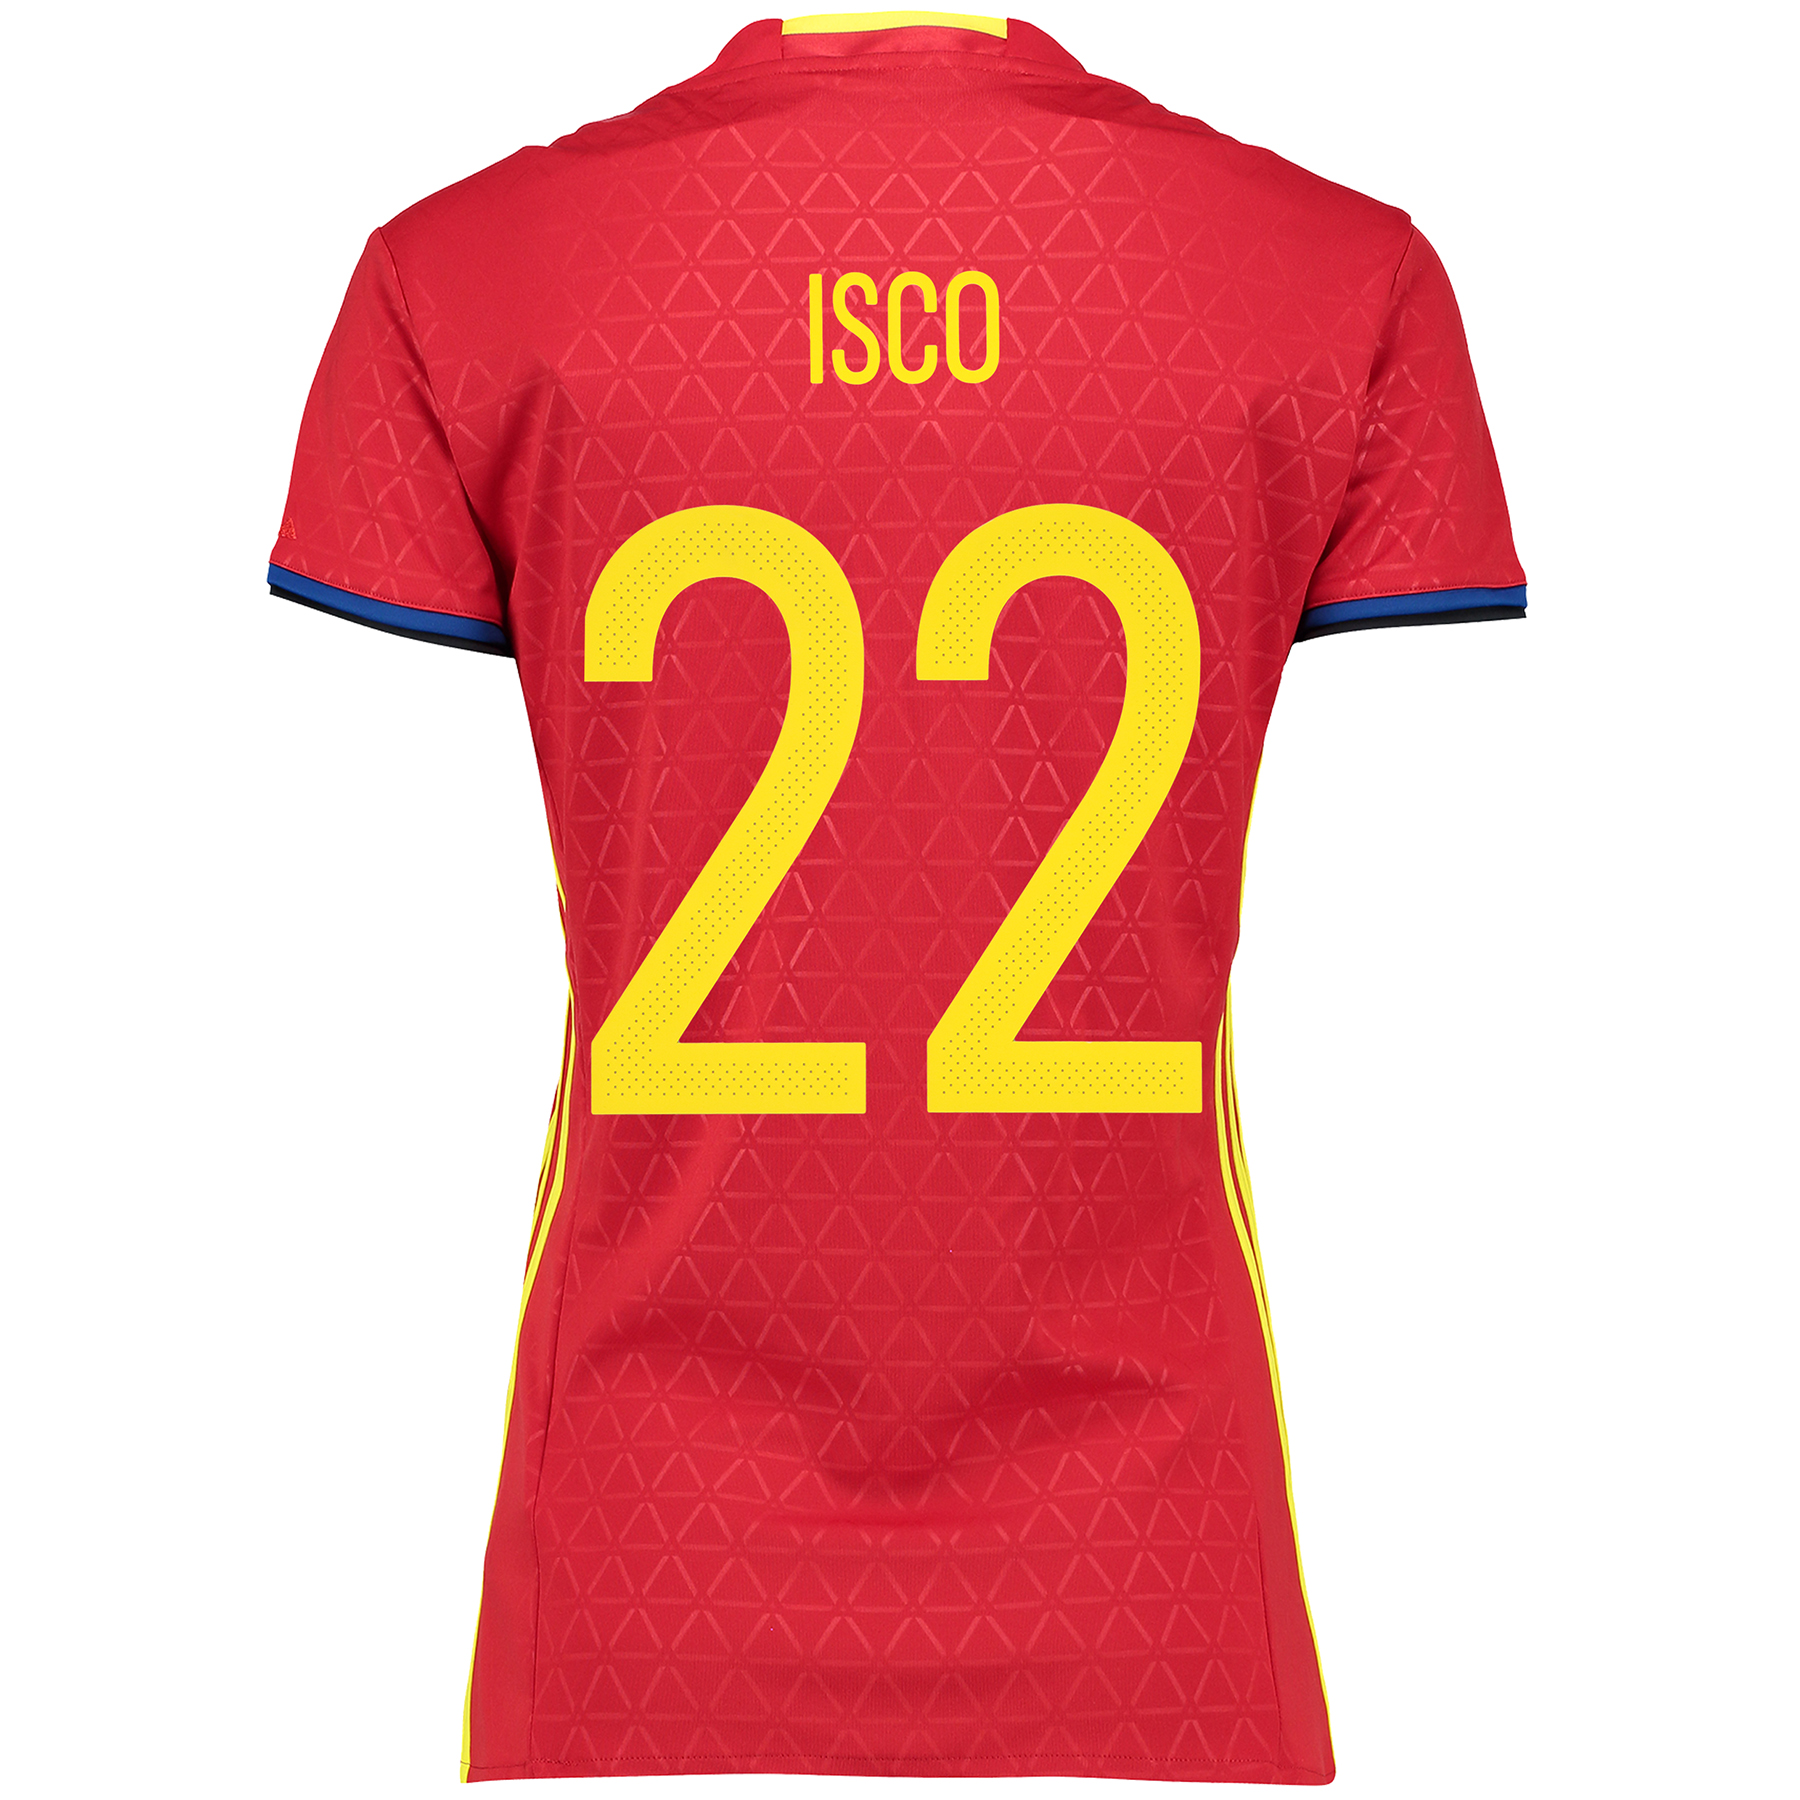 Spain Home Shirt 2016 - Womens Red with Isco 22 printing